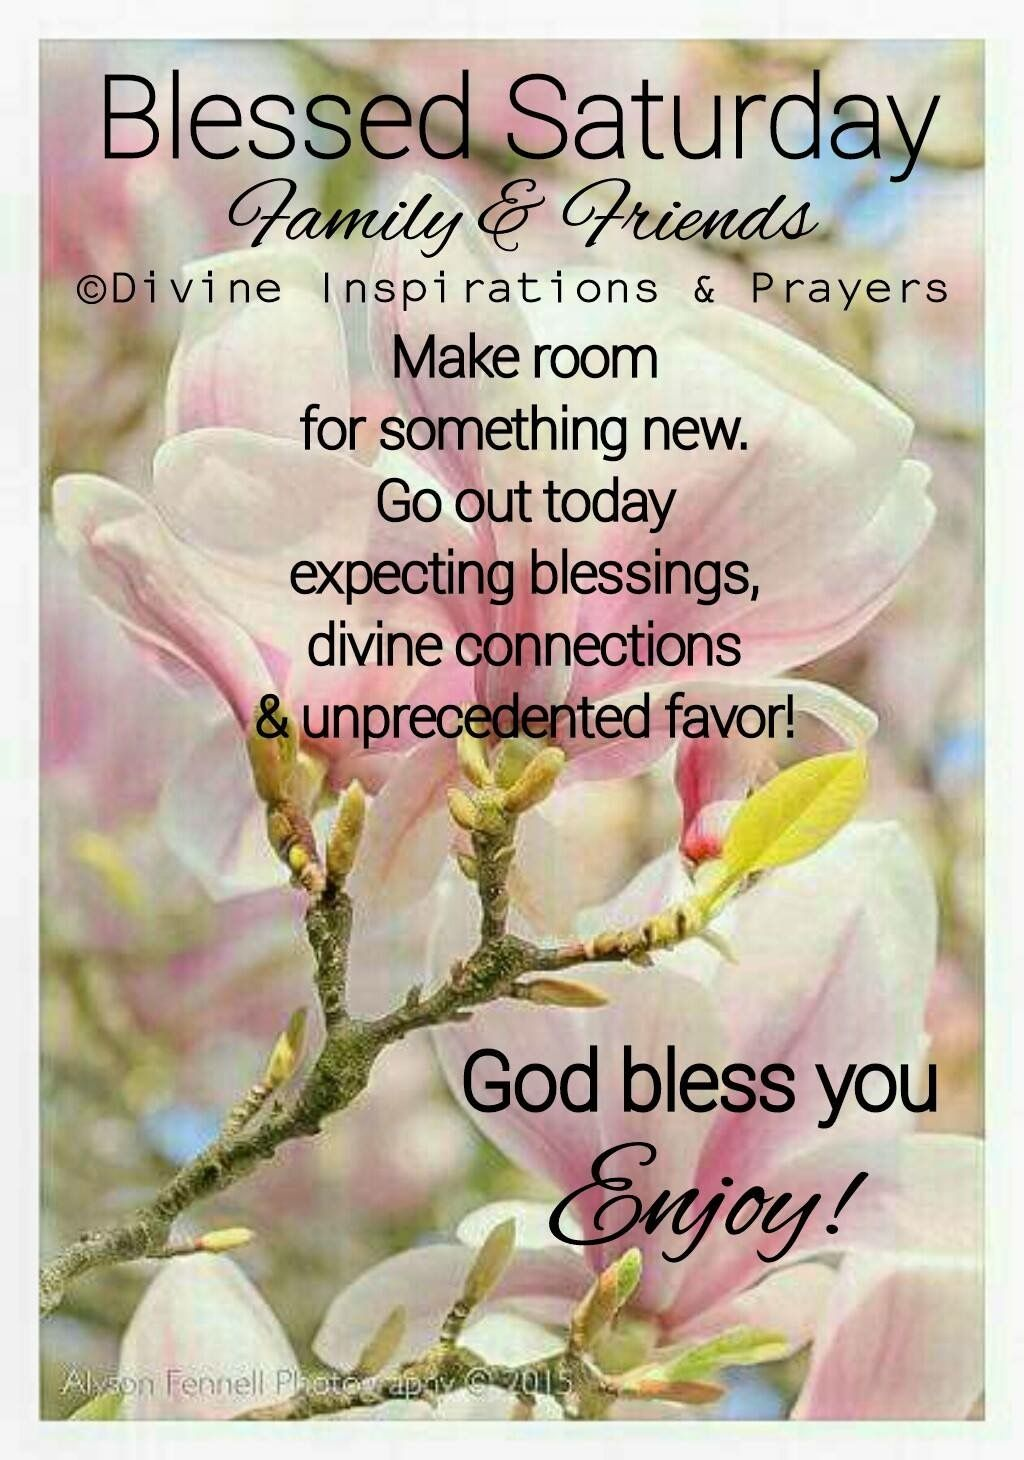 Saturday Blessings | Saturday Blessings | Saturday morning quotes